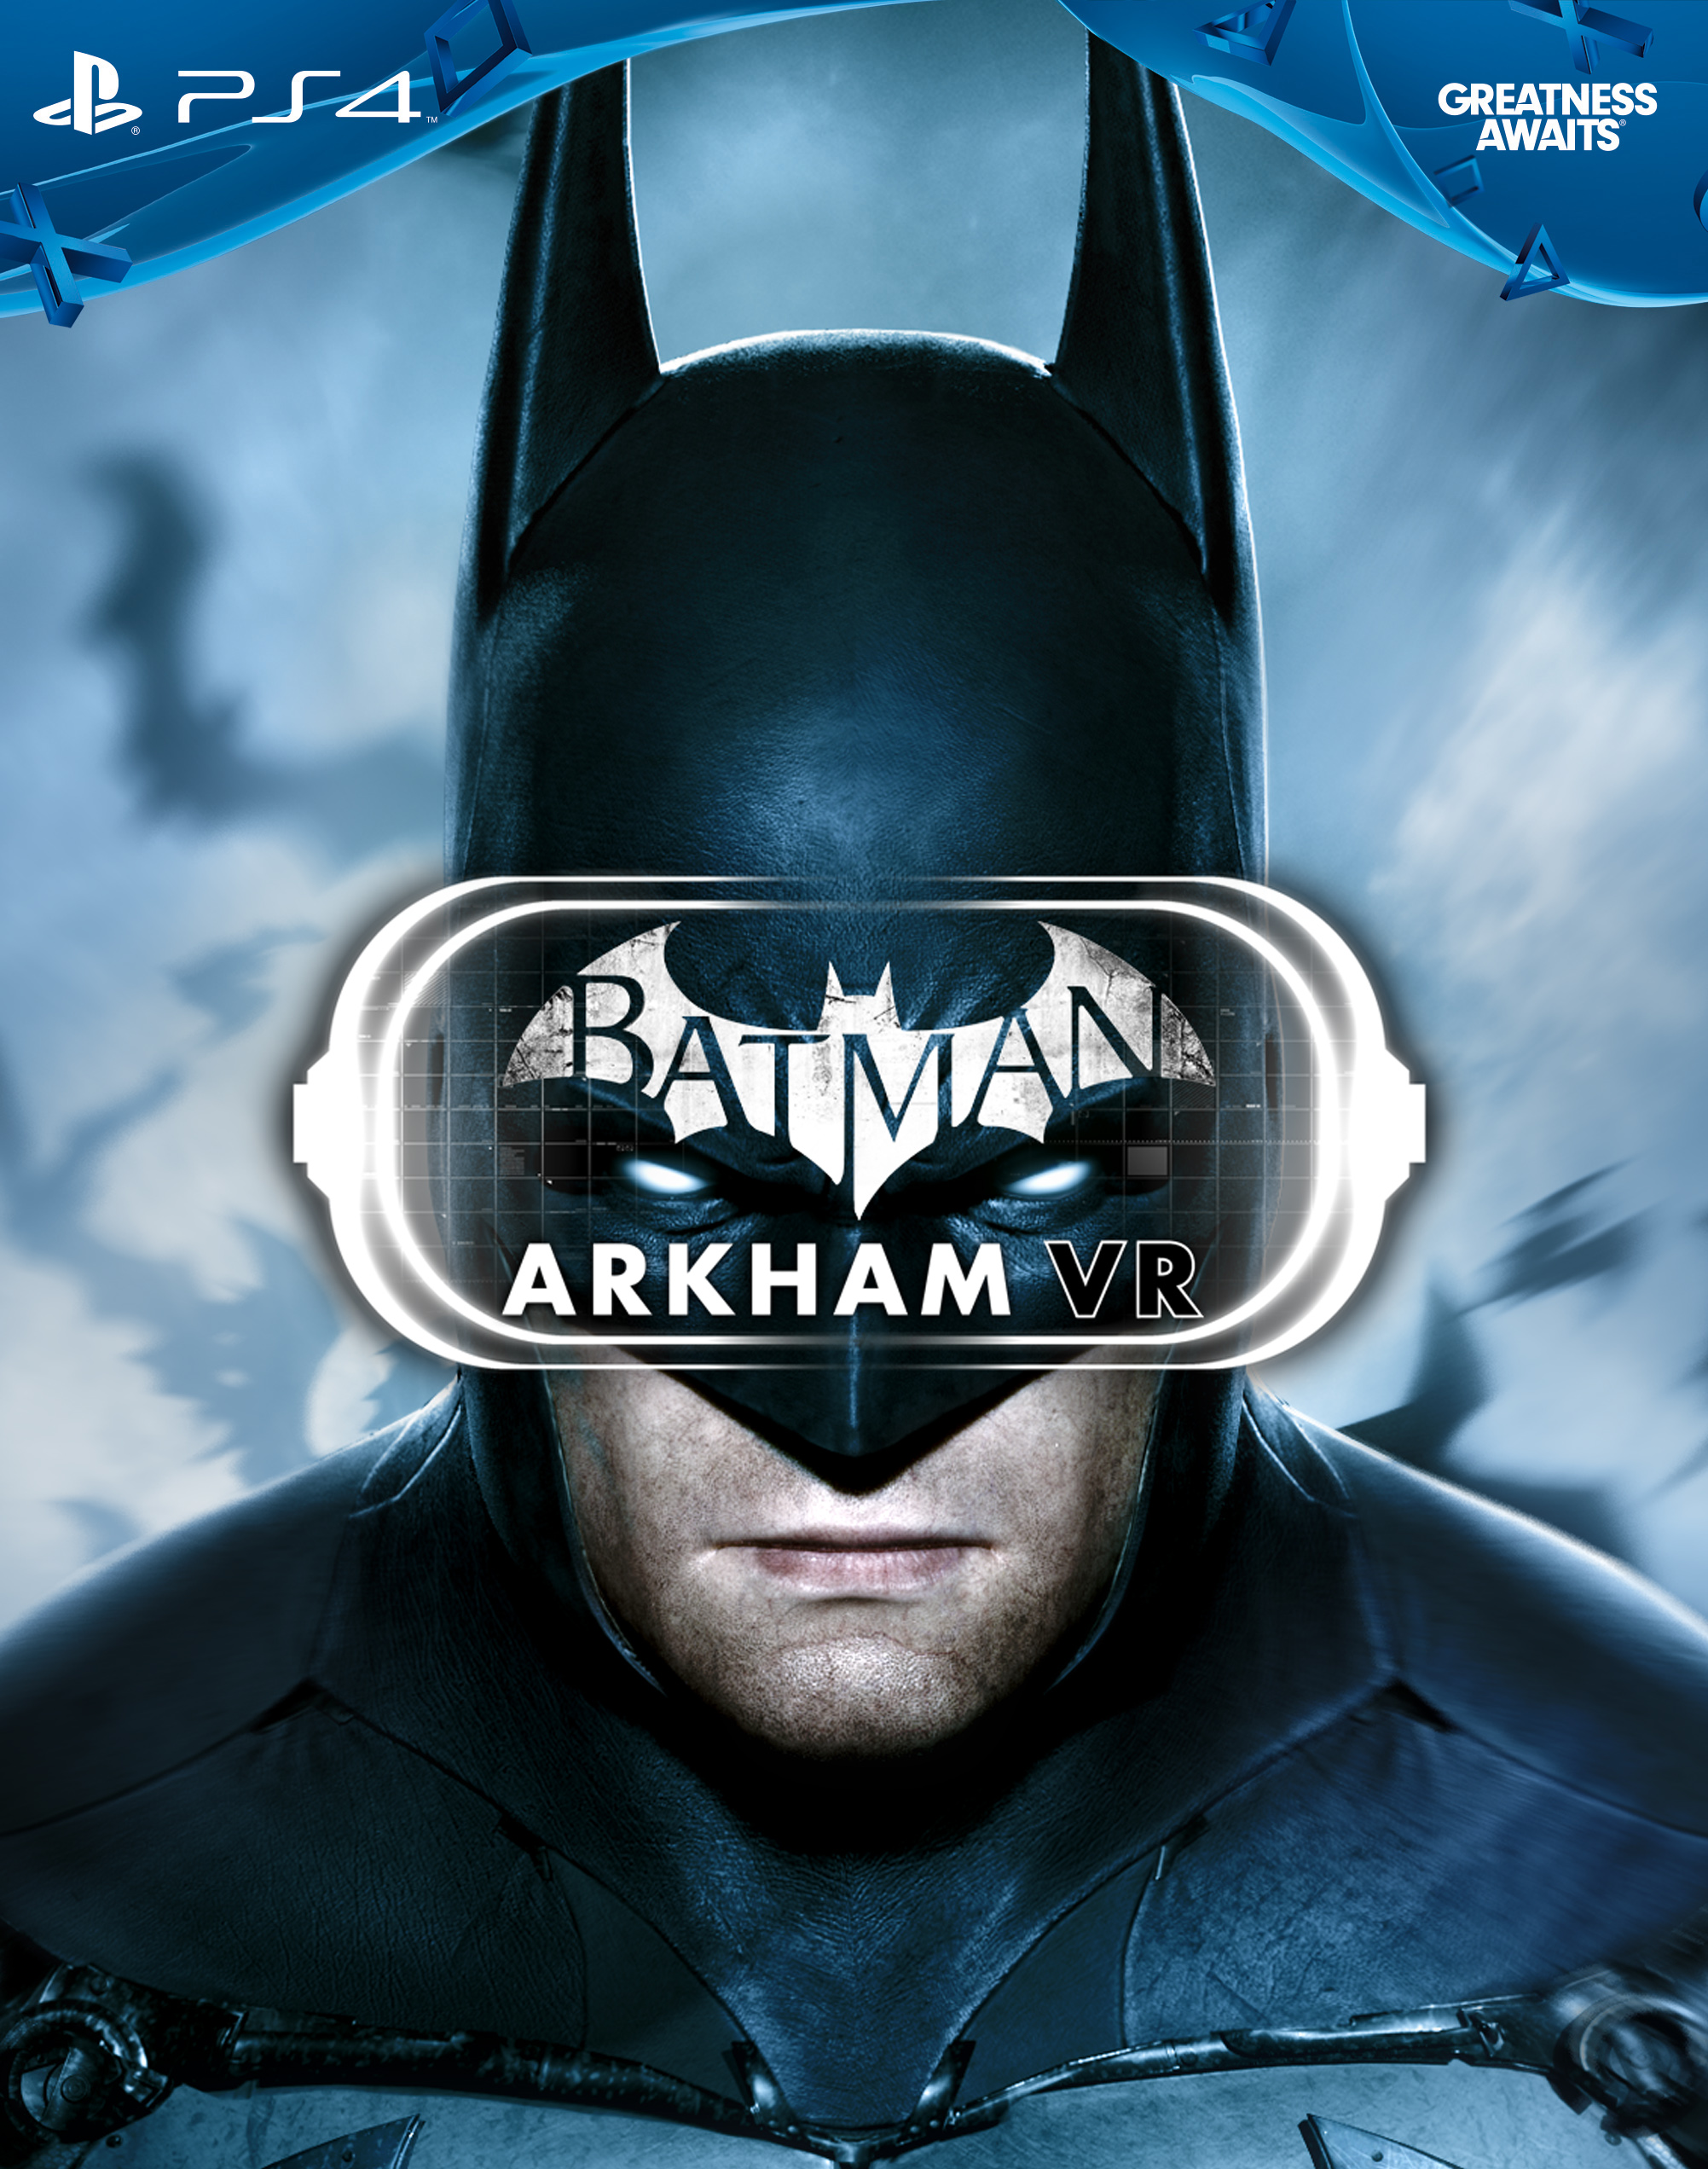 Batman: Arkham VR Languages: French, Italian, German, Castilian Spanish, Latin American Spanish, Brazilian Portuguese, Polish, Russian, and Japanese Platforms: PS4 and PC